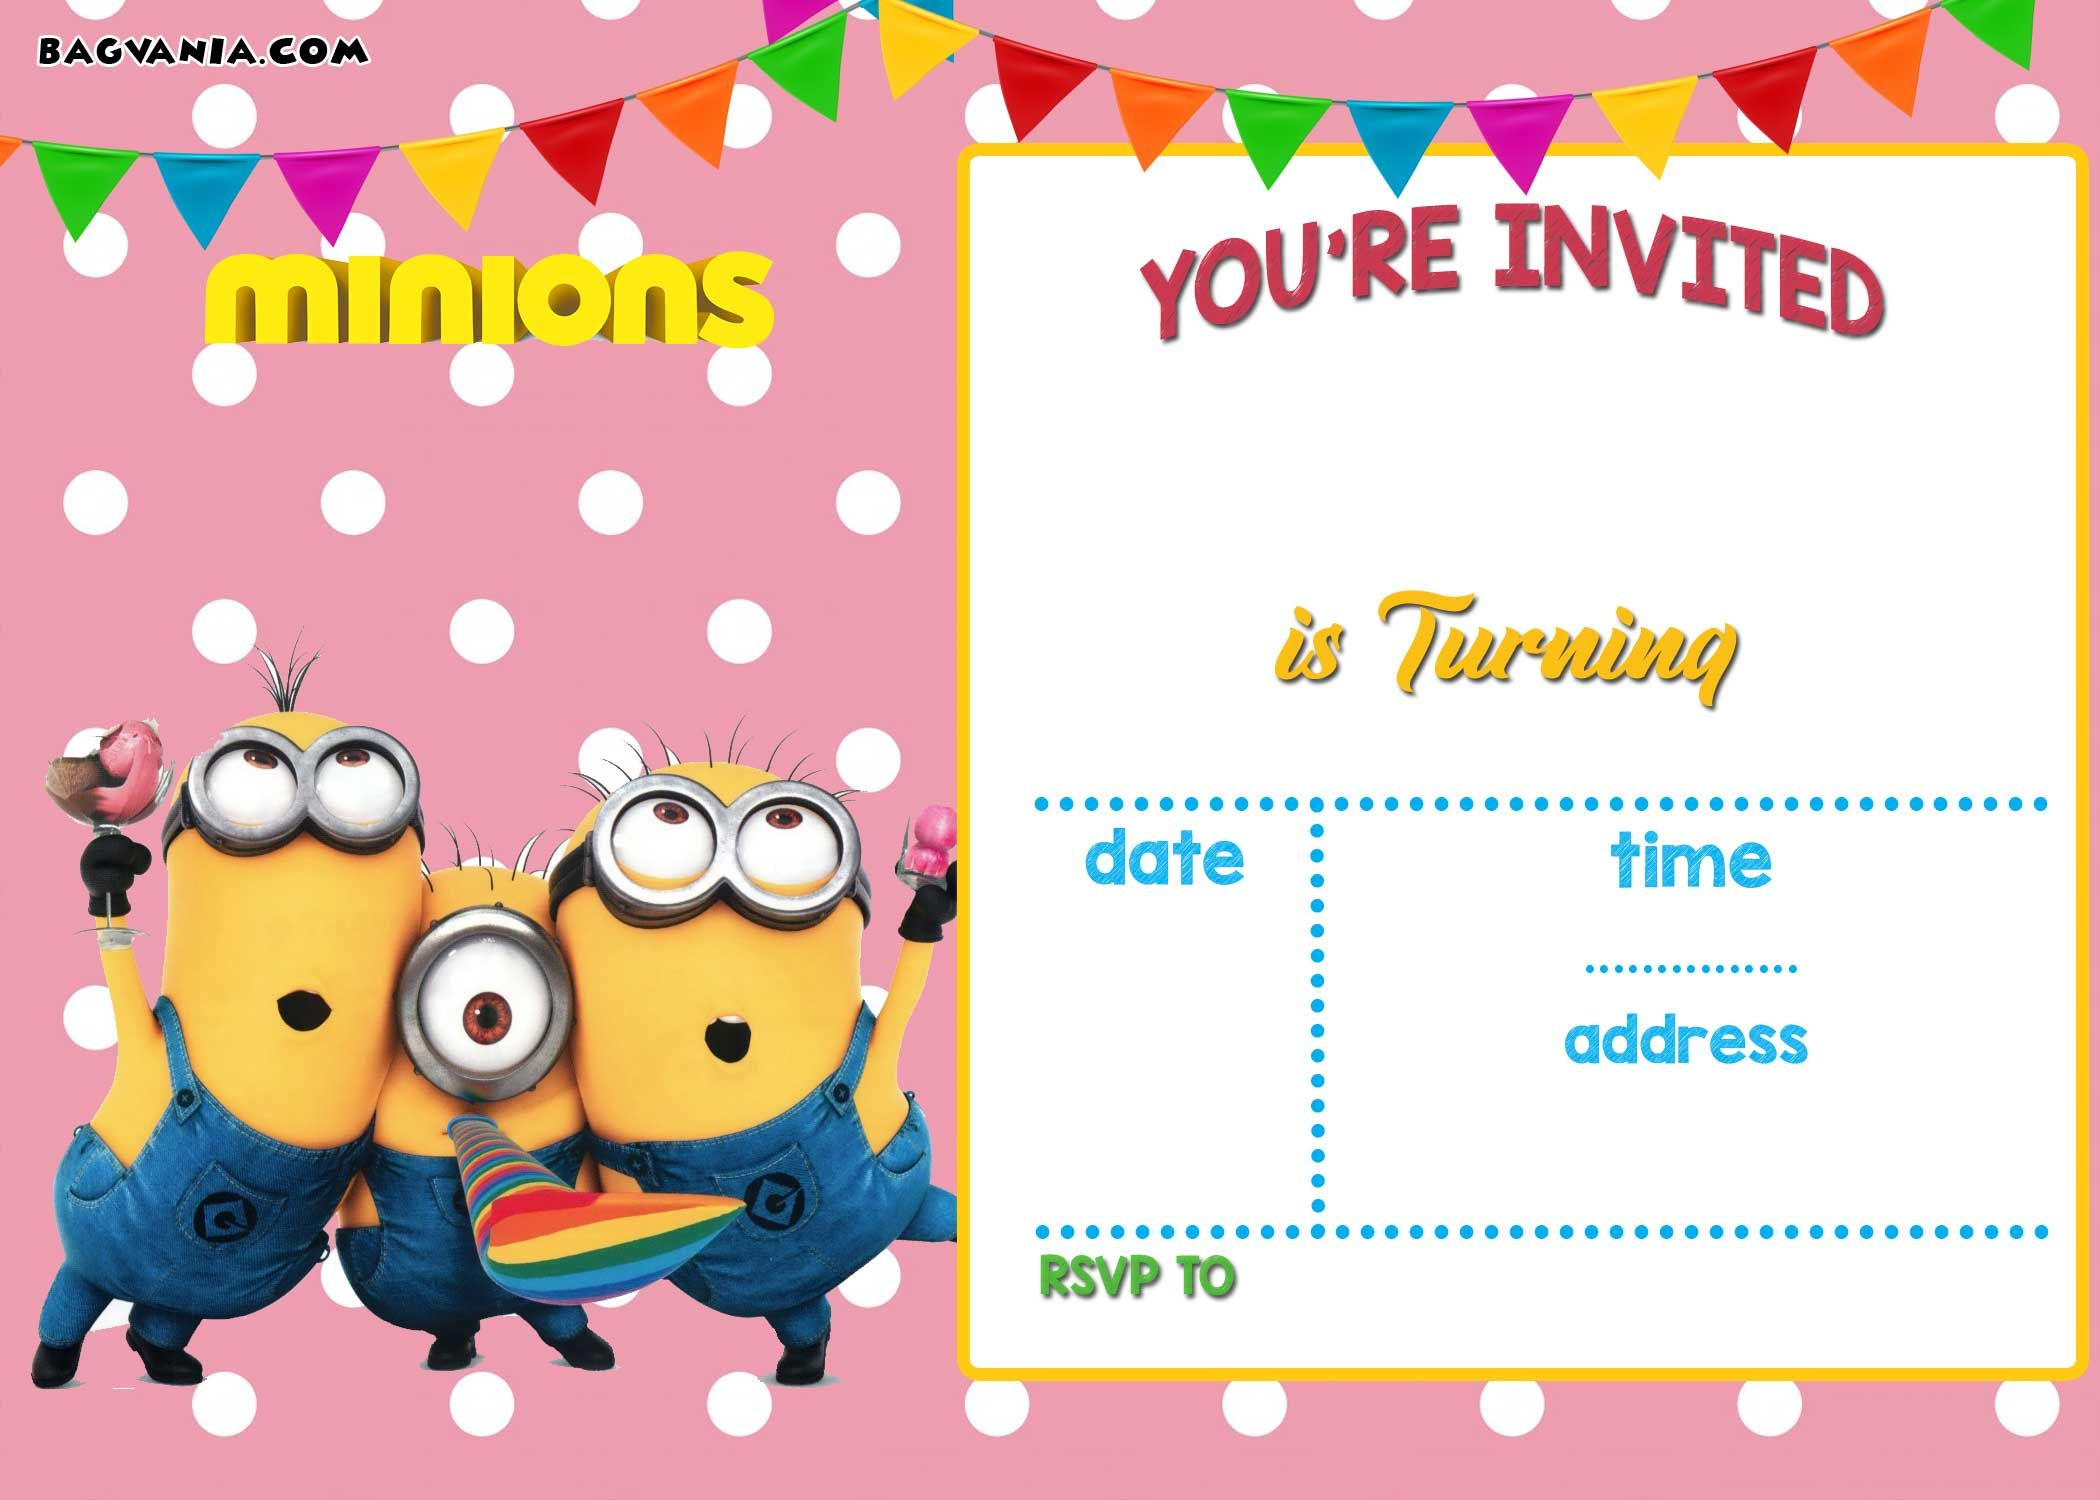 Updated Bunch Of Minion Birthday Party Invitations Ideas Free Downloadable Minion Birthday Invitations Party Invite Template Minion Invitation